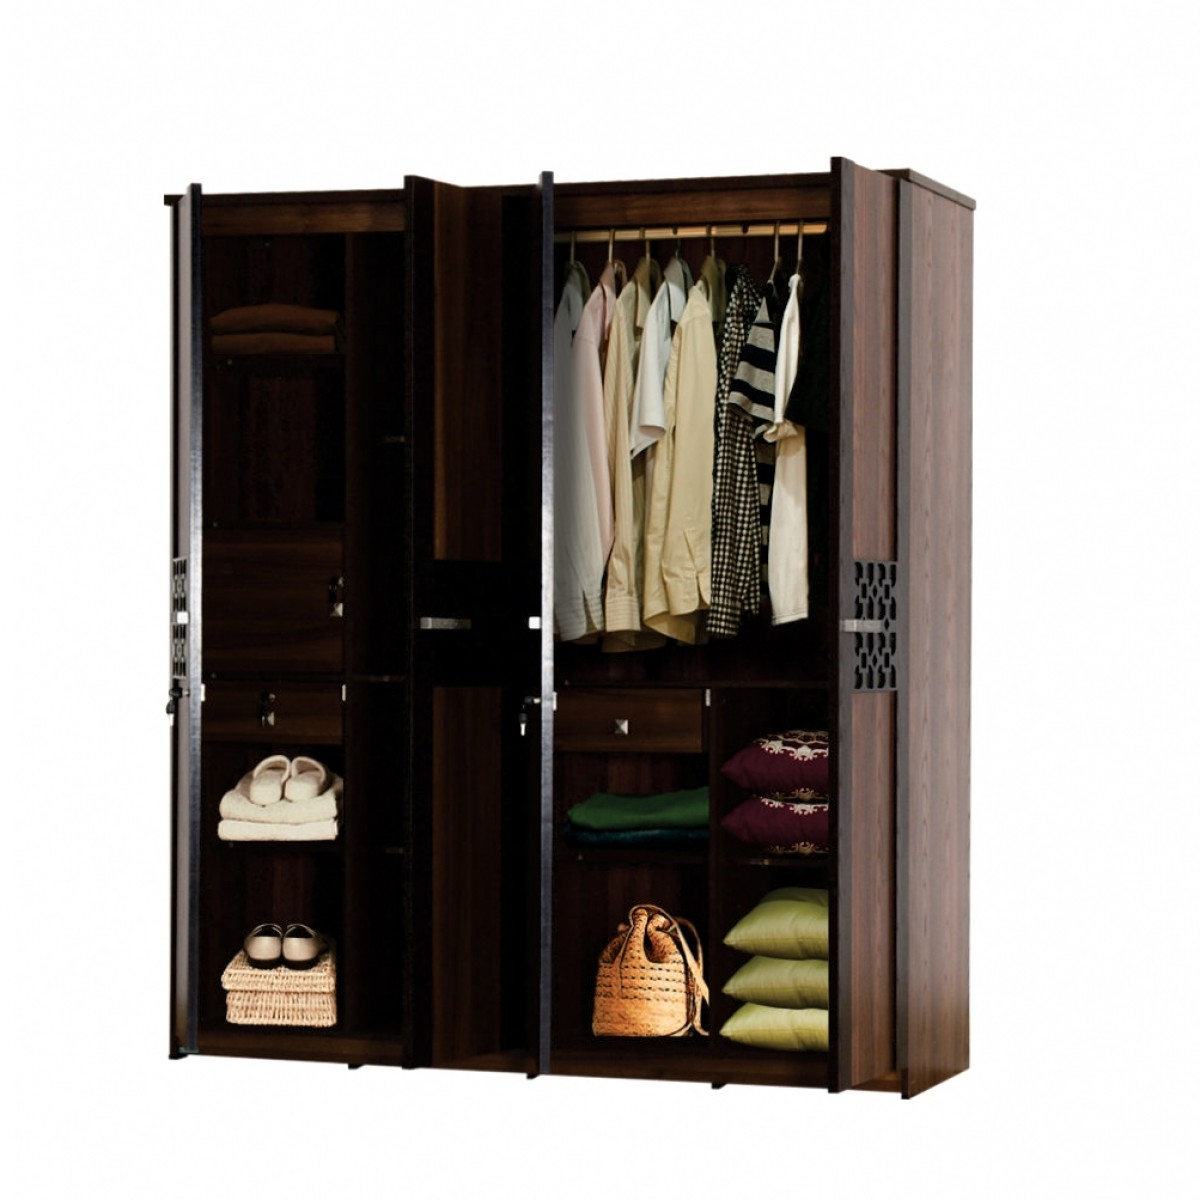 Wardrobes 4 Doors Regarding Most Popular Carvin 4 Door Wardrobe (View 3 of 15)